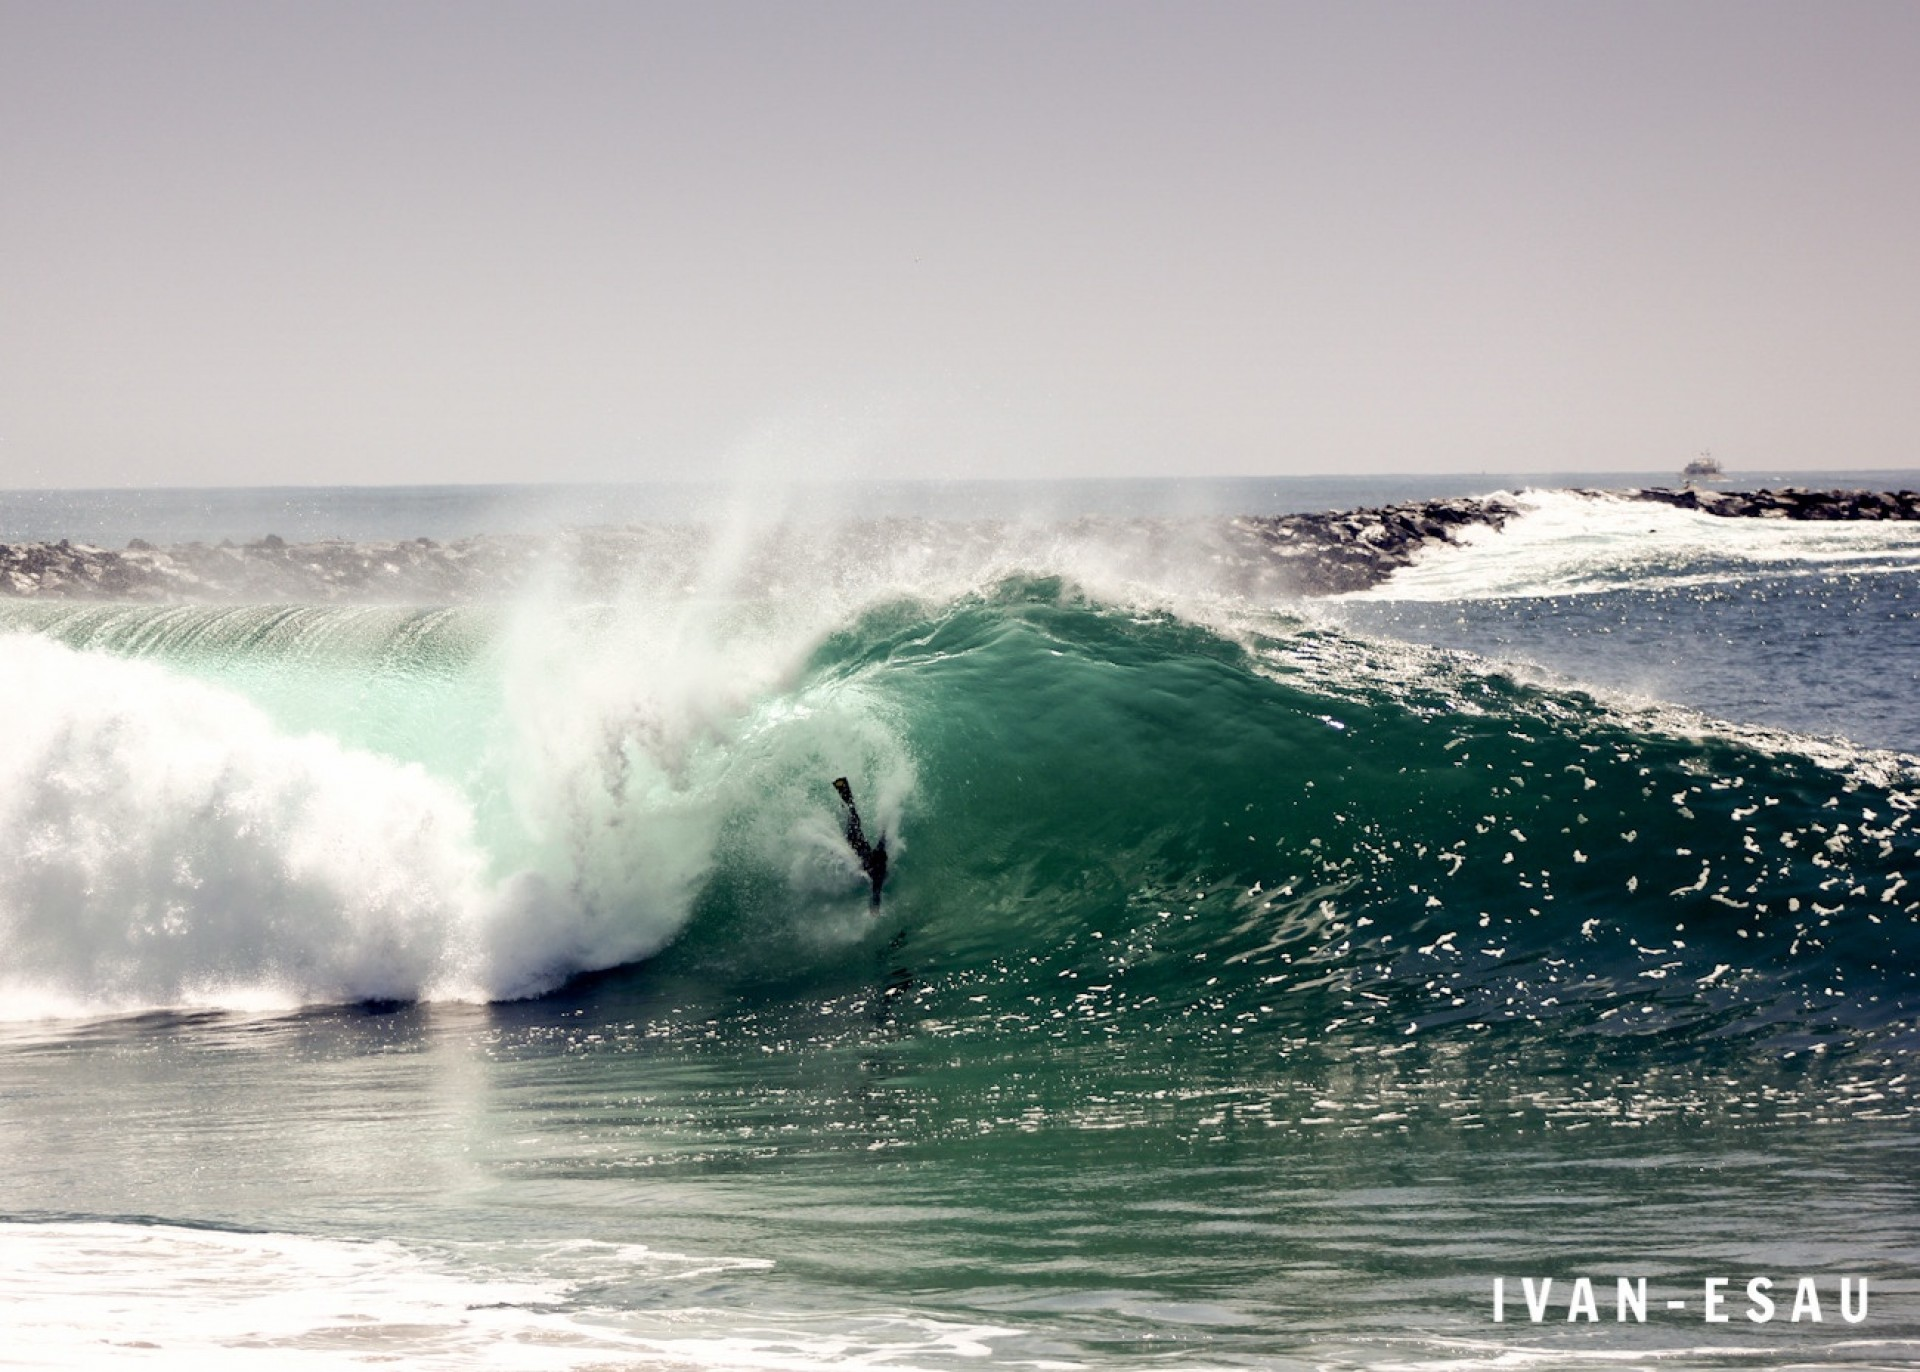 Tom Robinson's photo of The Wedge